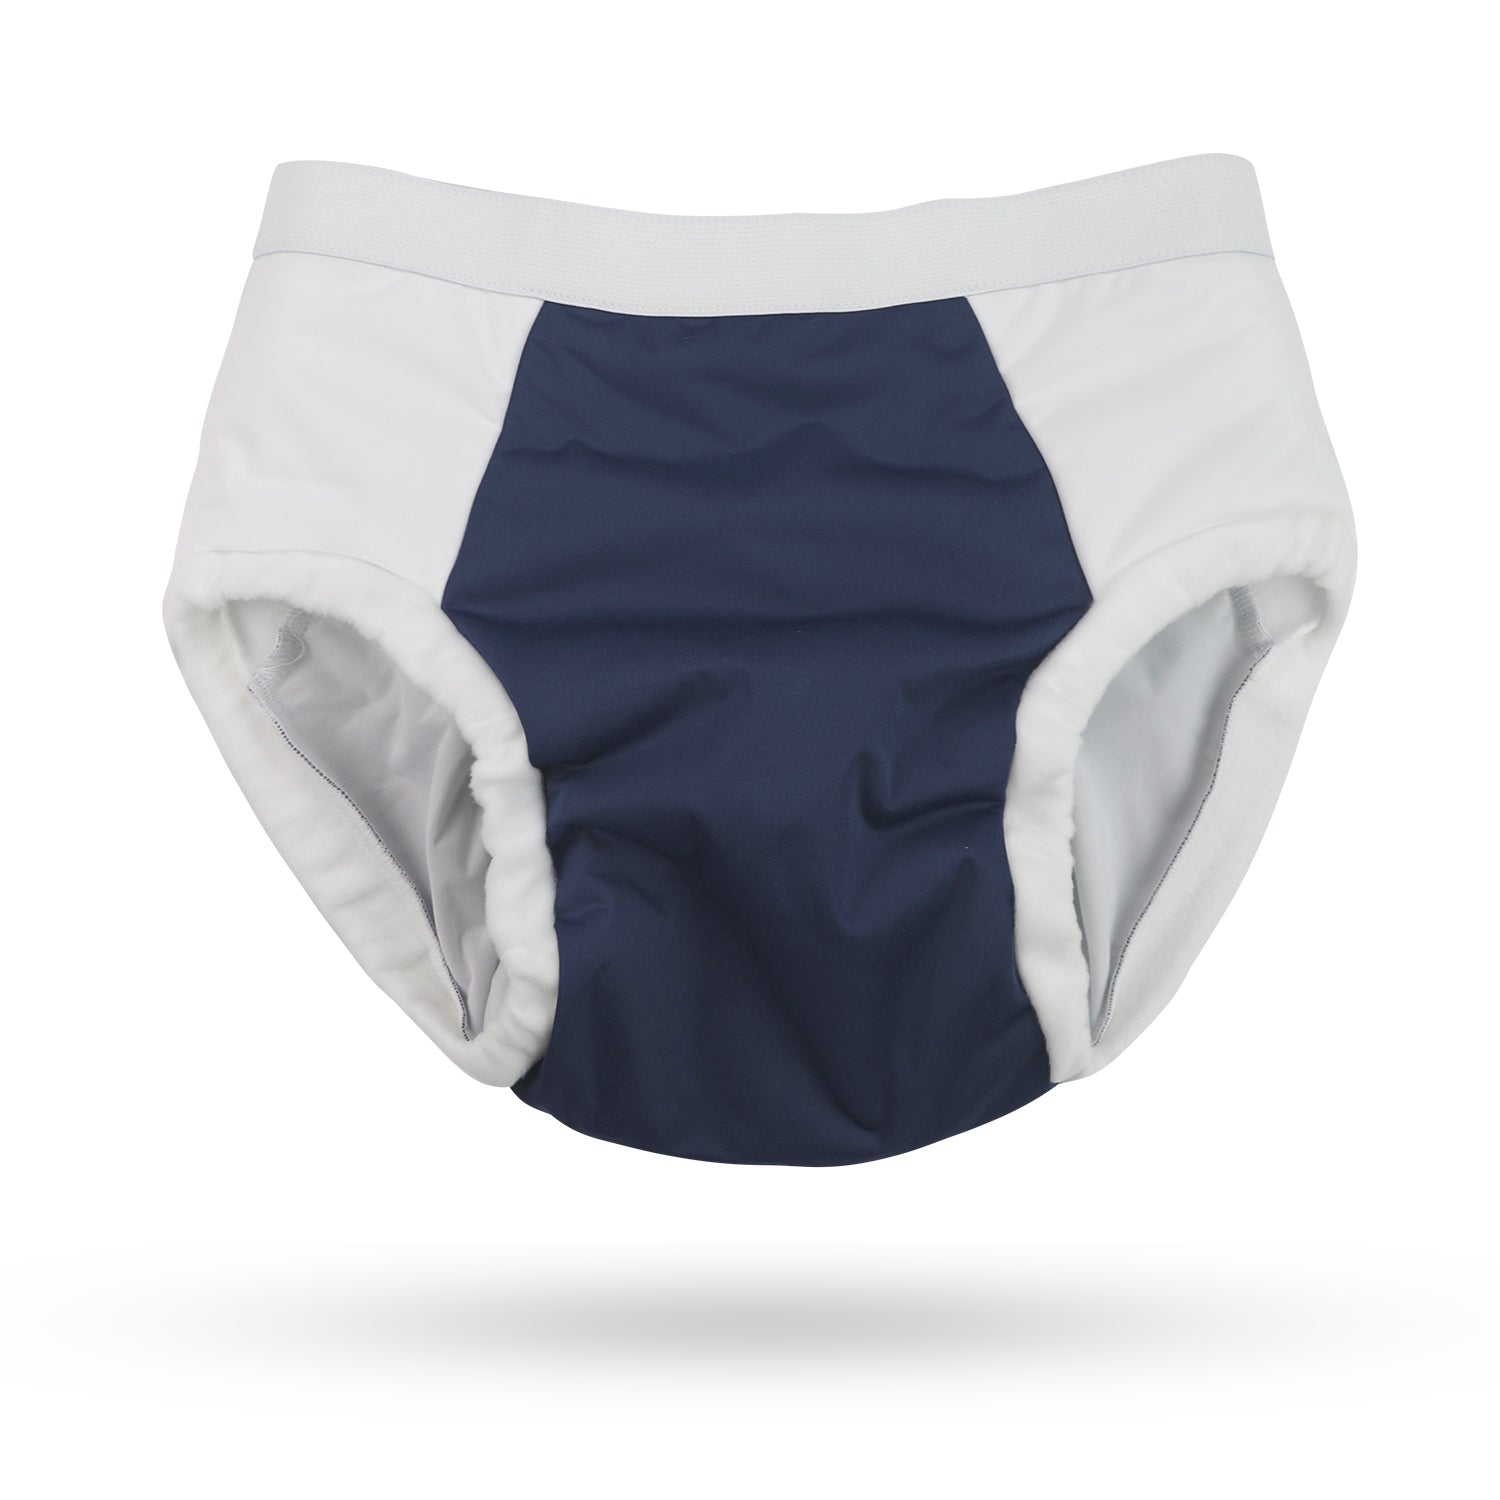 Reusable Adult Diaper, Cloth, waterproof, washable